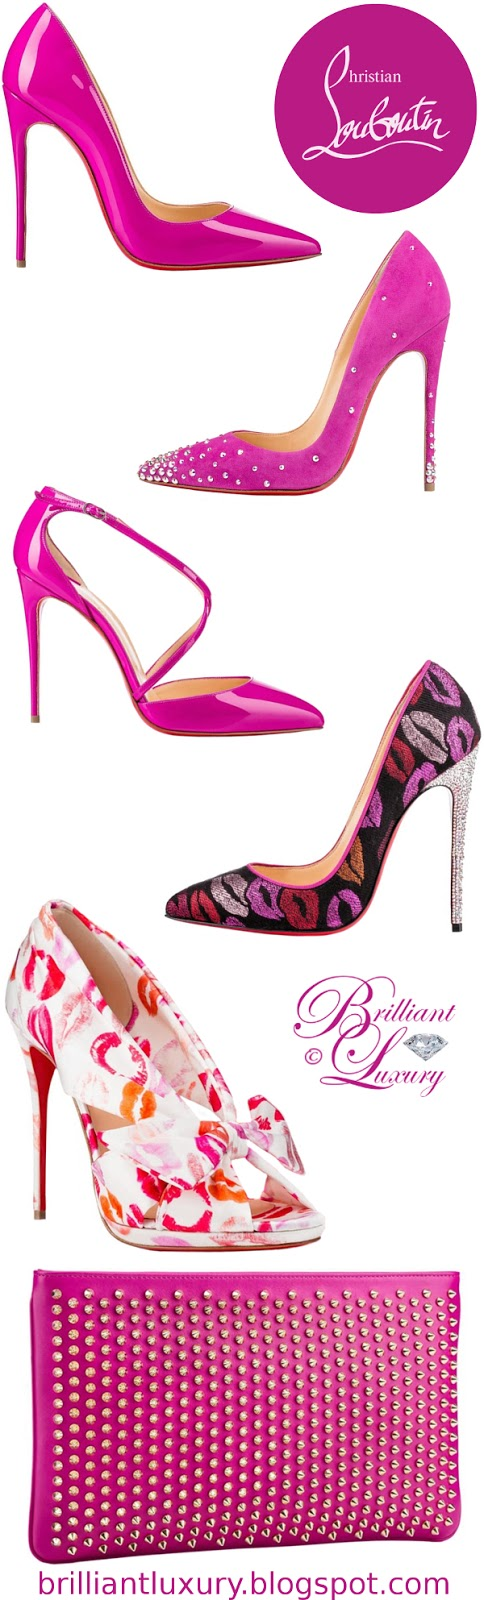 Brilliant Luxury ♦ Christian Louboutin Magenta Edition